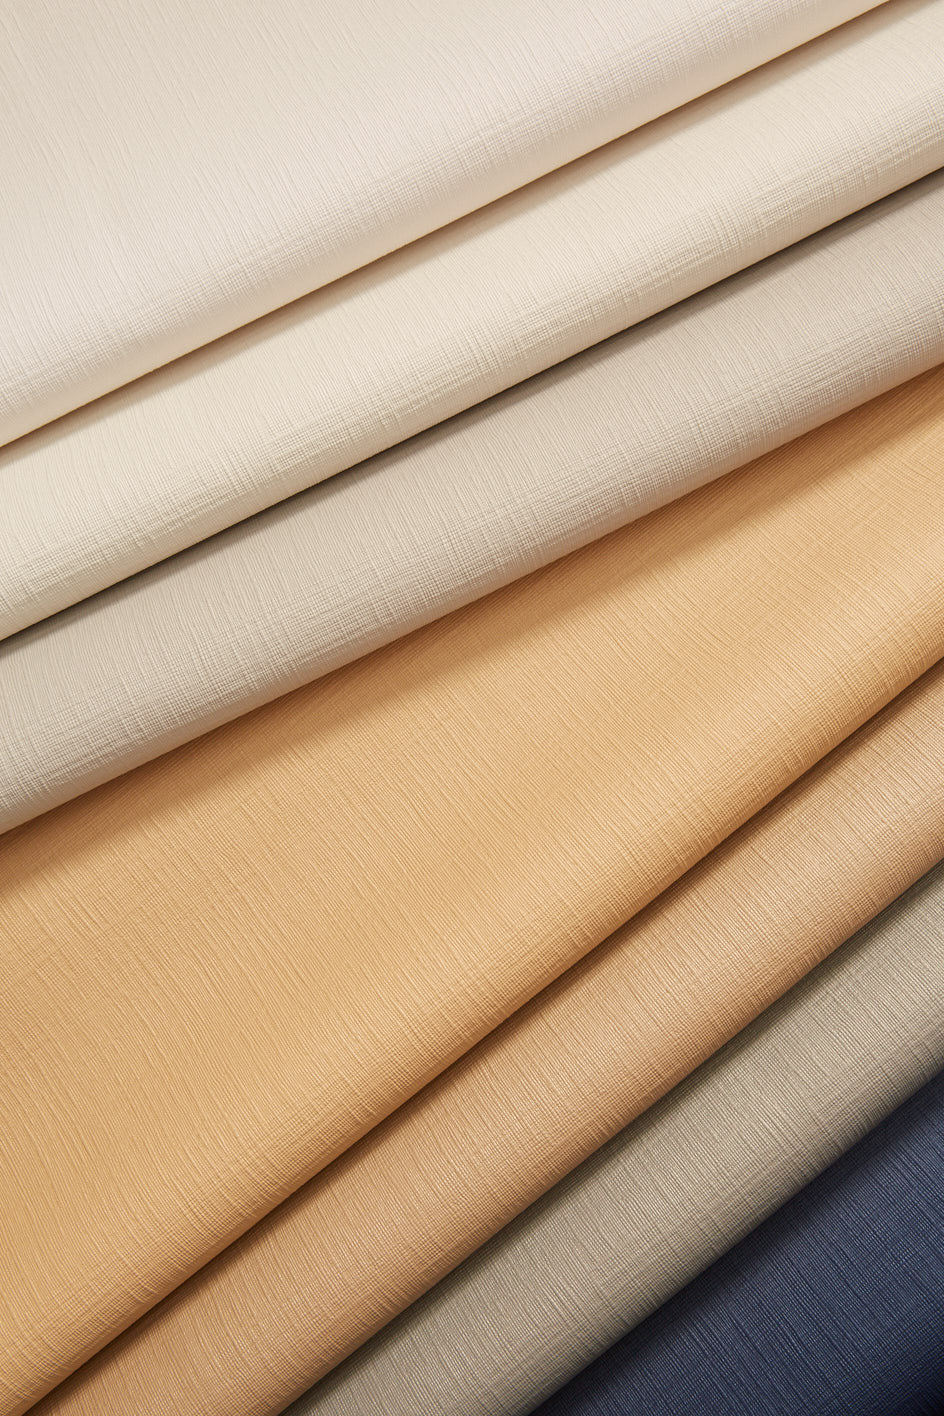 A selection of Sunbrella Horizon fabrics